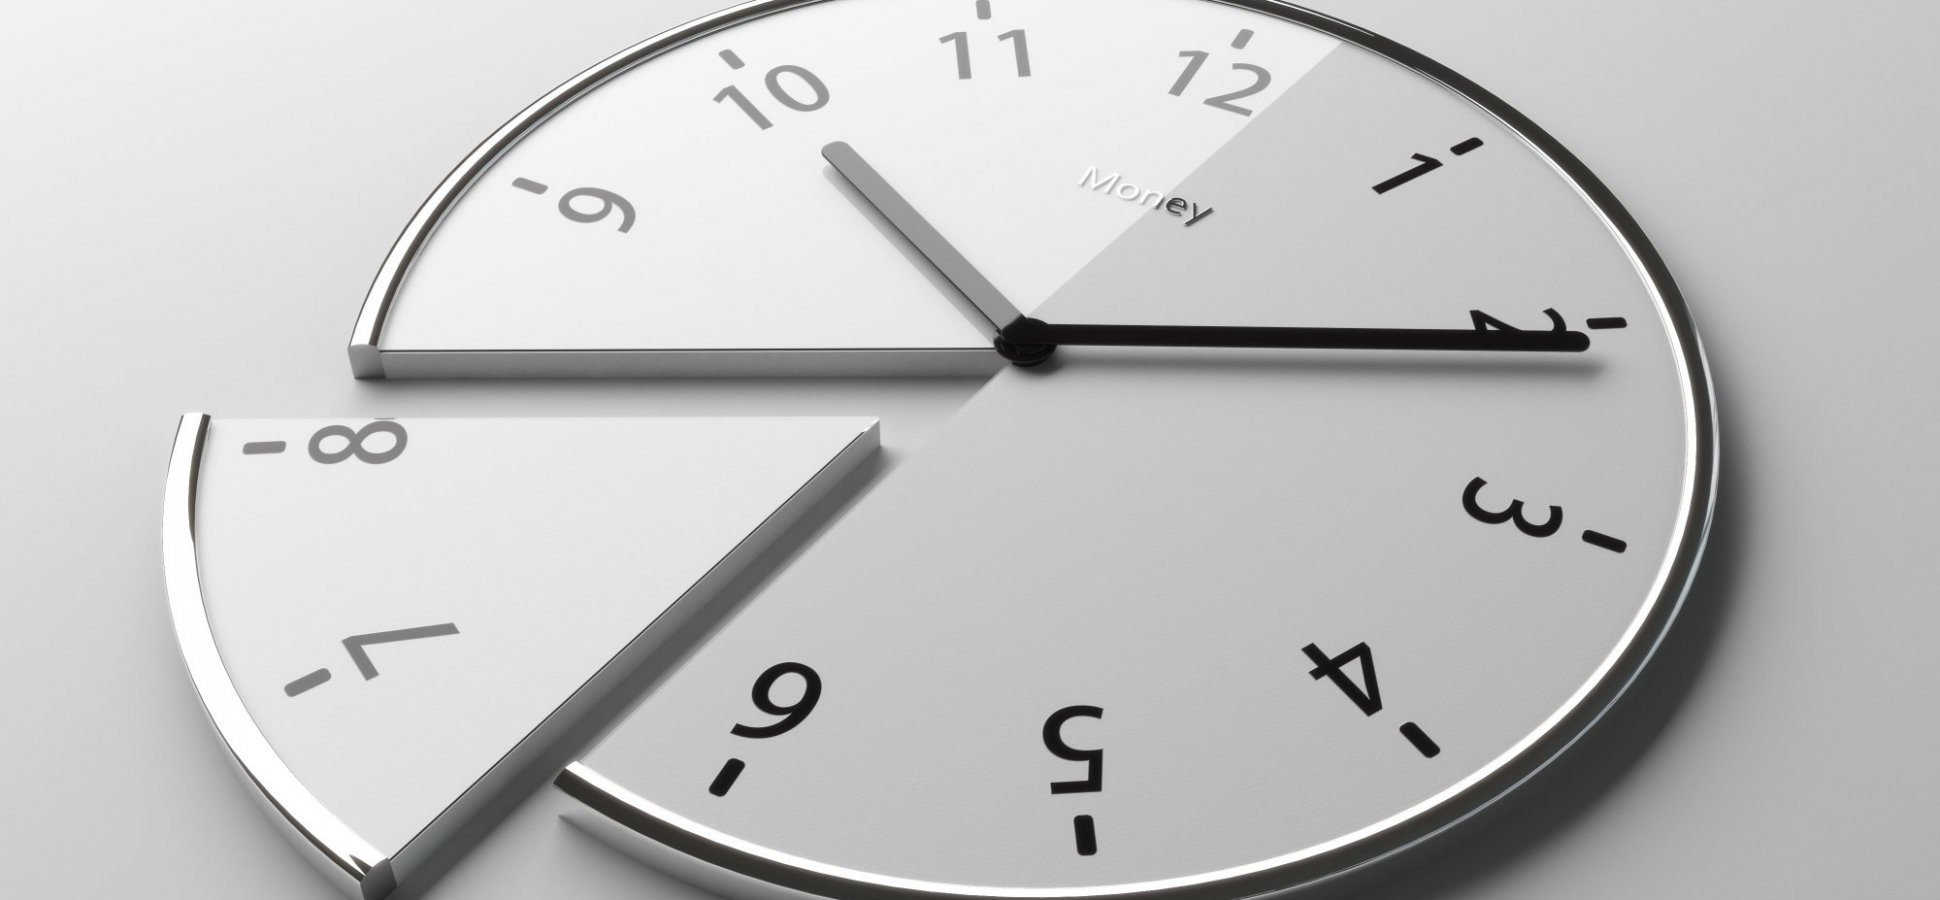 5 Ways Small Business Owners Save Precious Minutes of Their Day